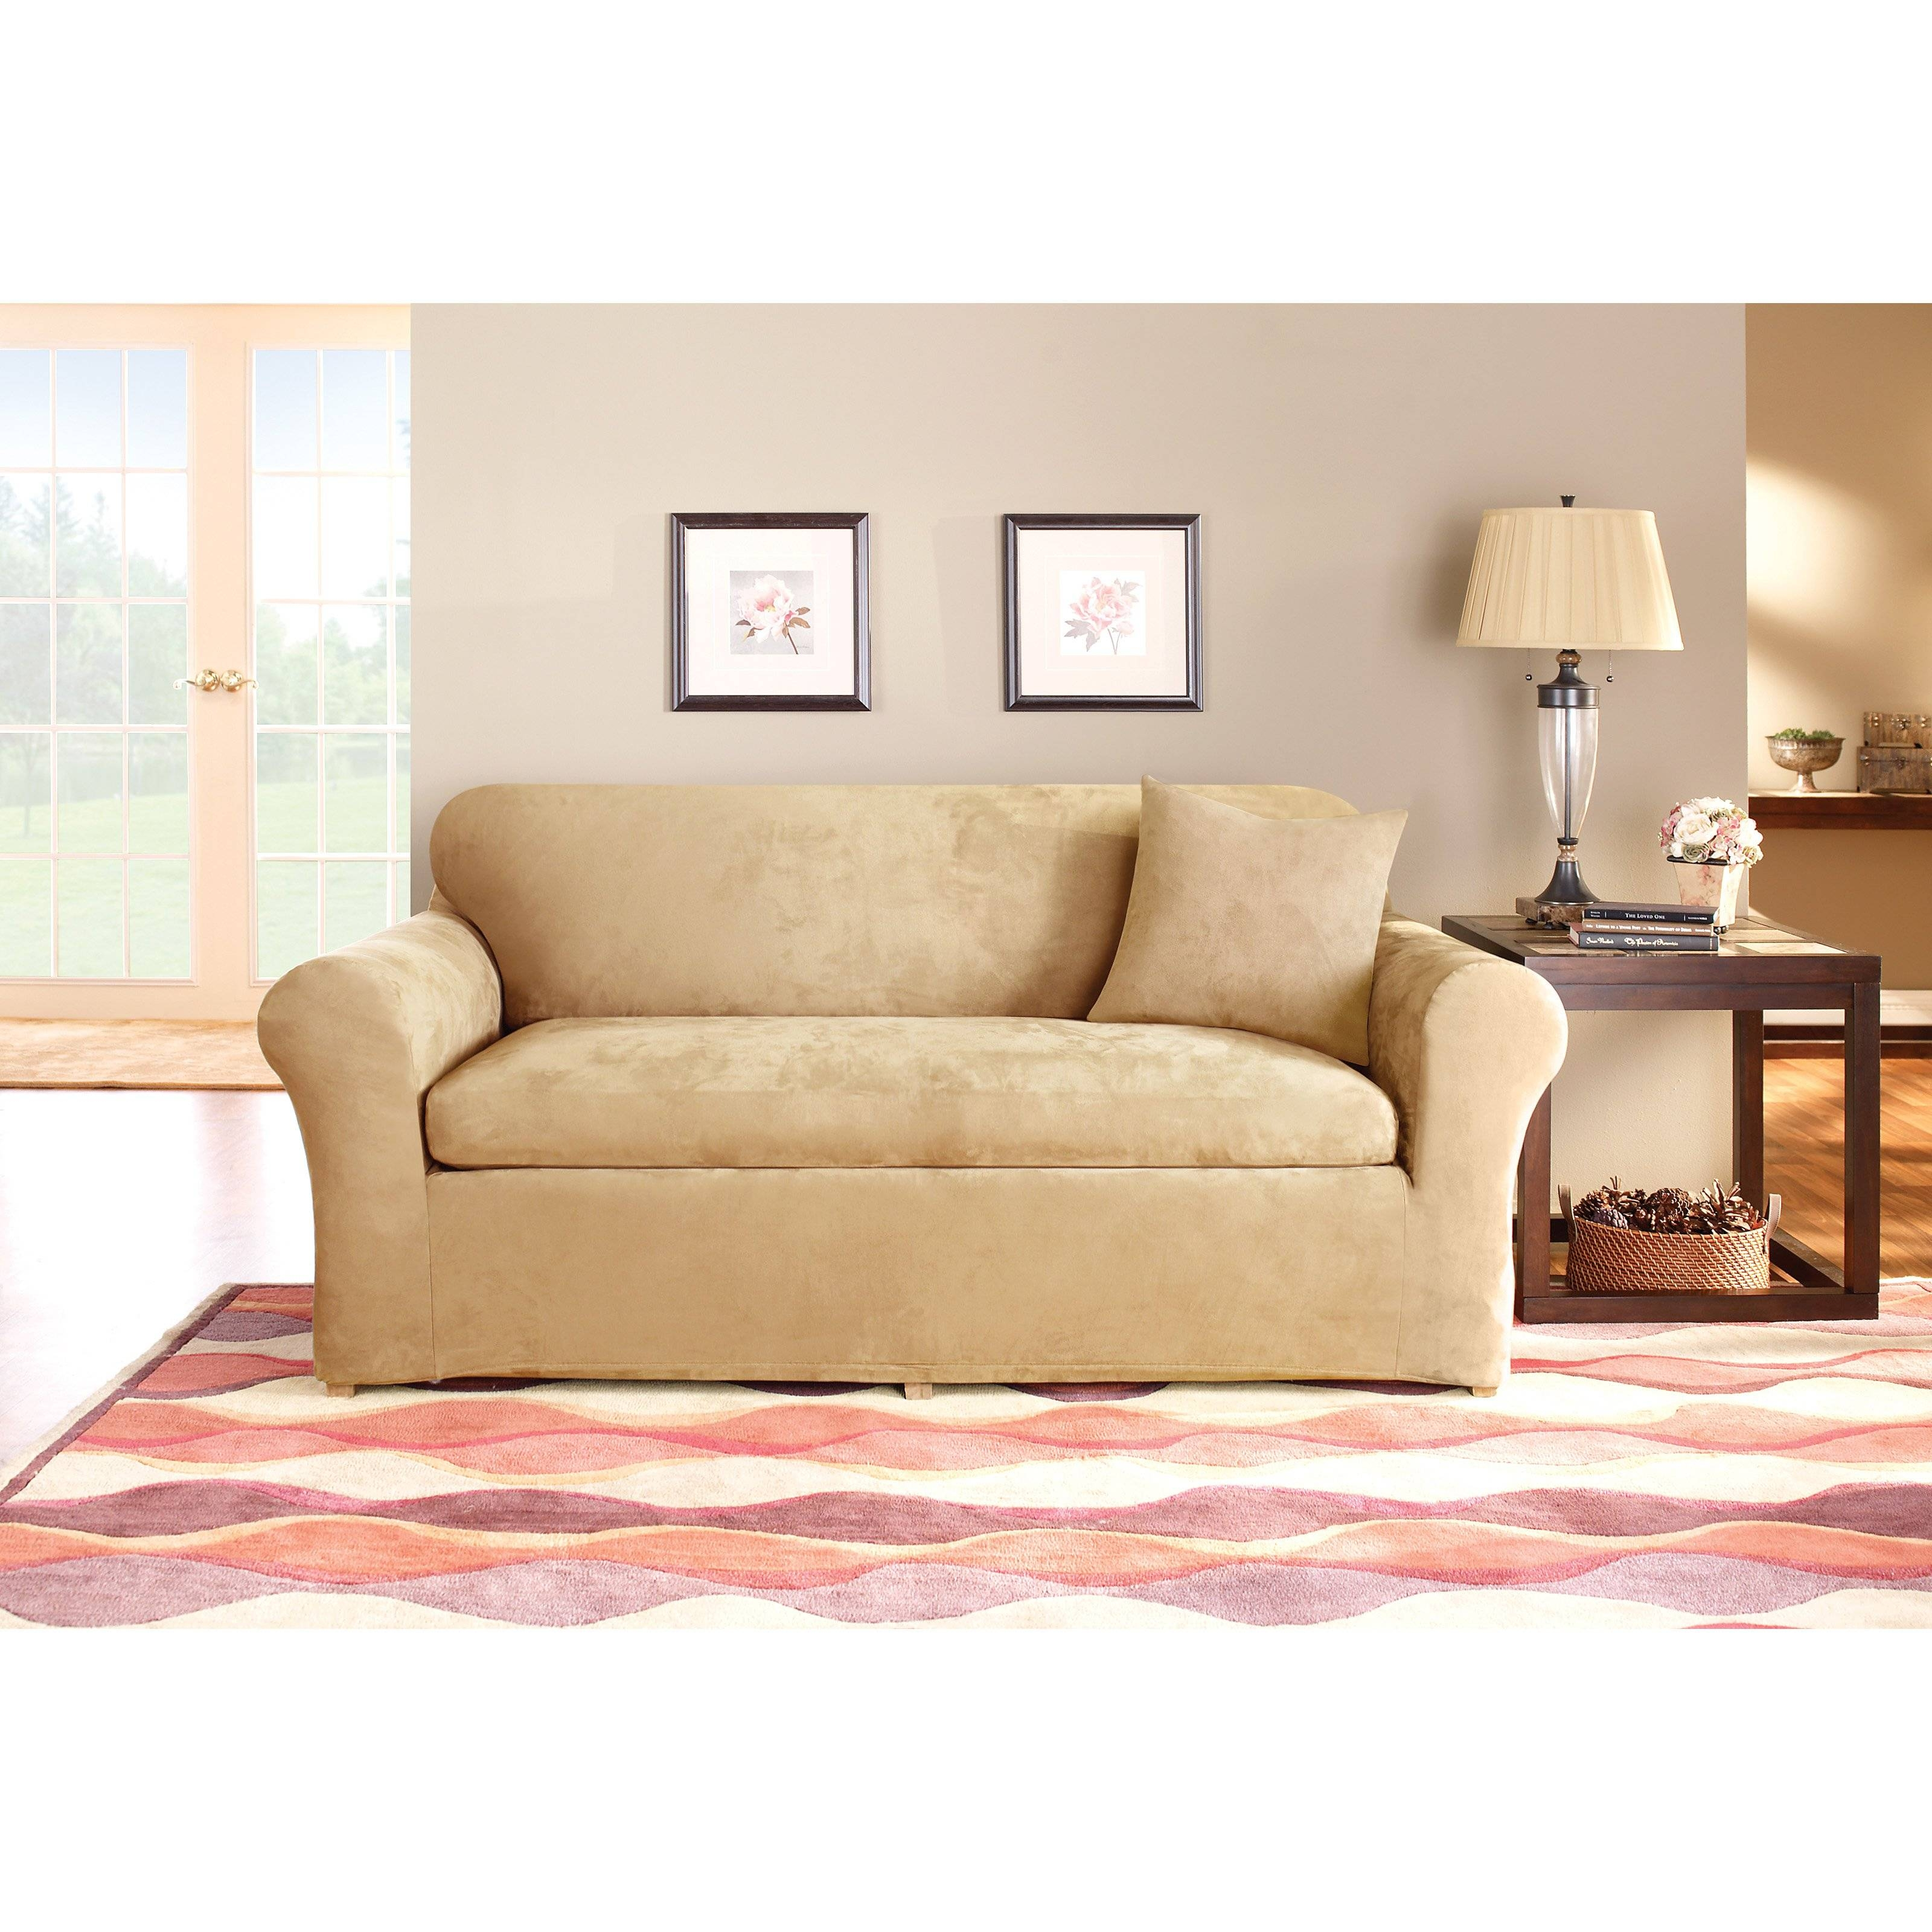 Sure Fit Stretch Suede 3-Piece Loveseat Slipcover - Walmart within Loveseat Slipcovers 3 Pieces (Image 13 of 15)